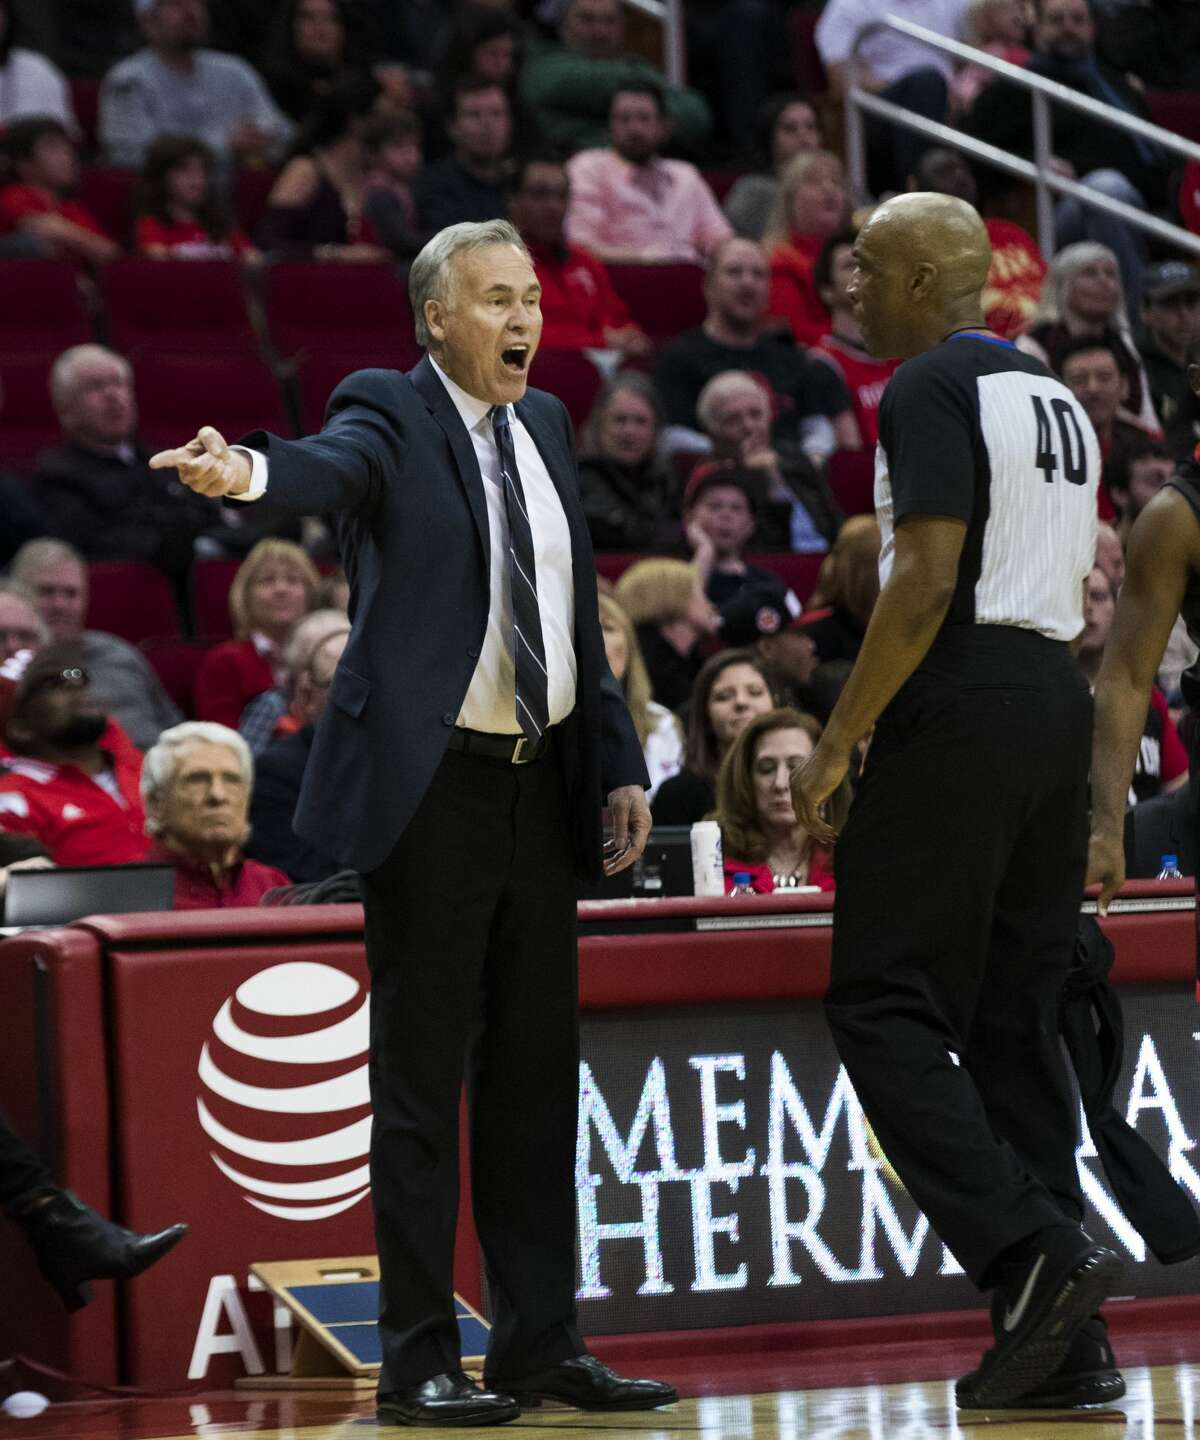 Houston Rockets head coach Mike D'Antoni argues with the referee Leon Wood (40) during the second half of the game between the Houston Rockets and the Los Angeles Lakers, Sunday, Dec. 31, 2017, in Houston. ( Marie D. De Jesus / Houston Chronicle )